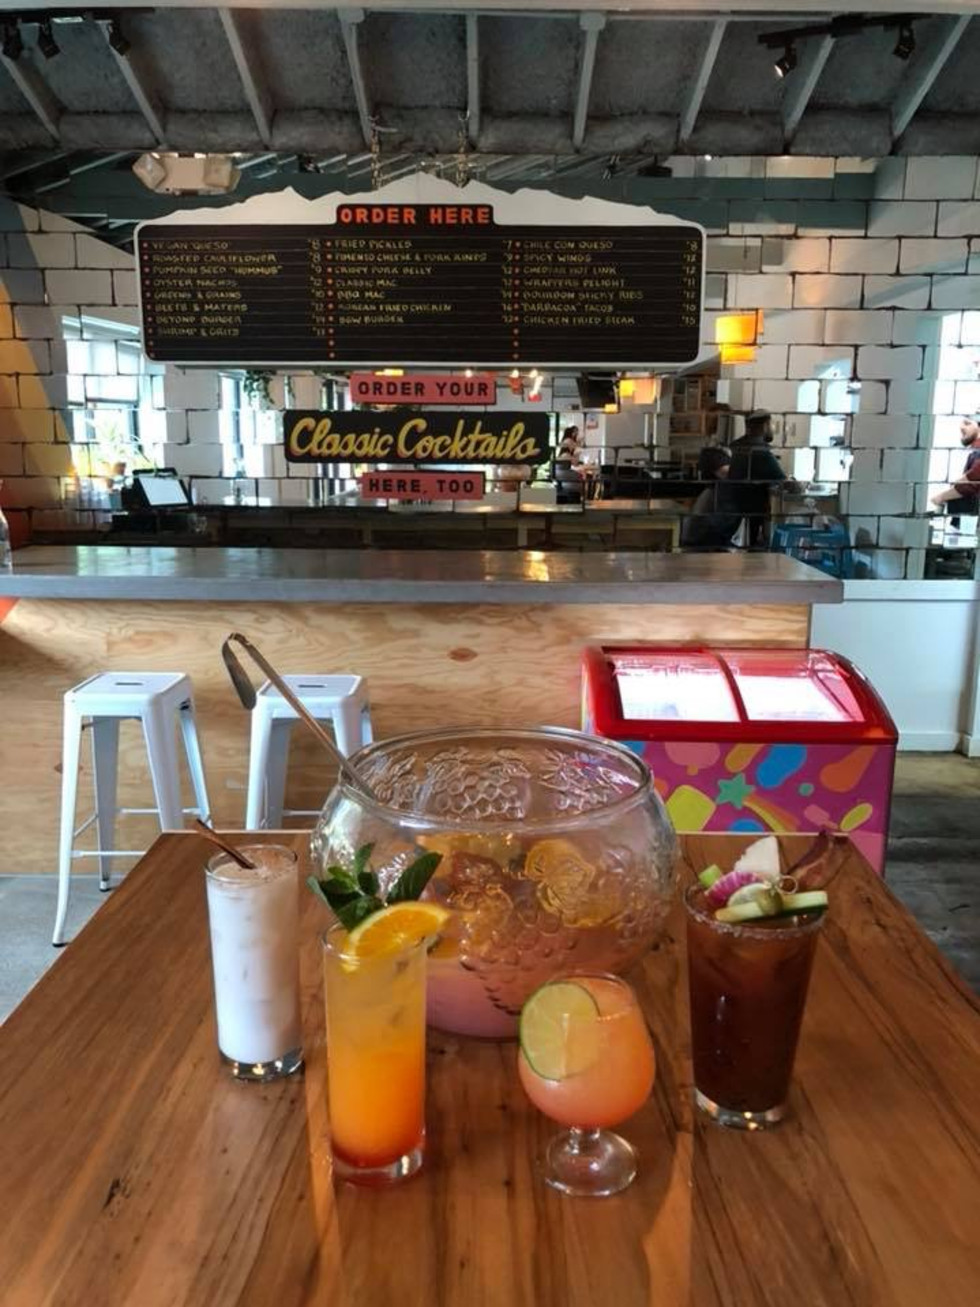 Beaver's original brunch cocktails